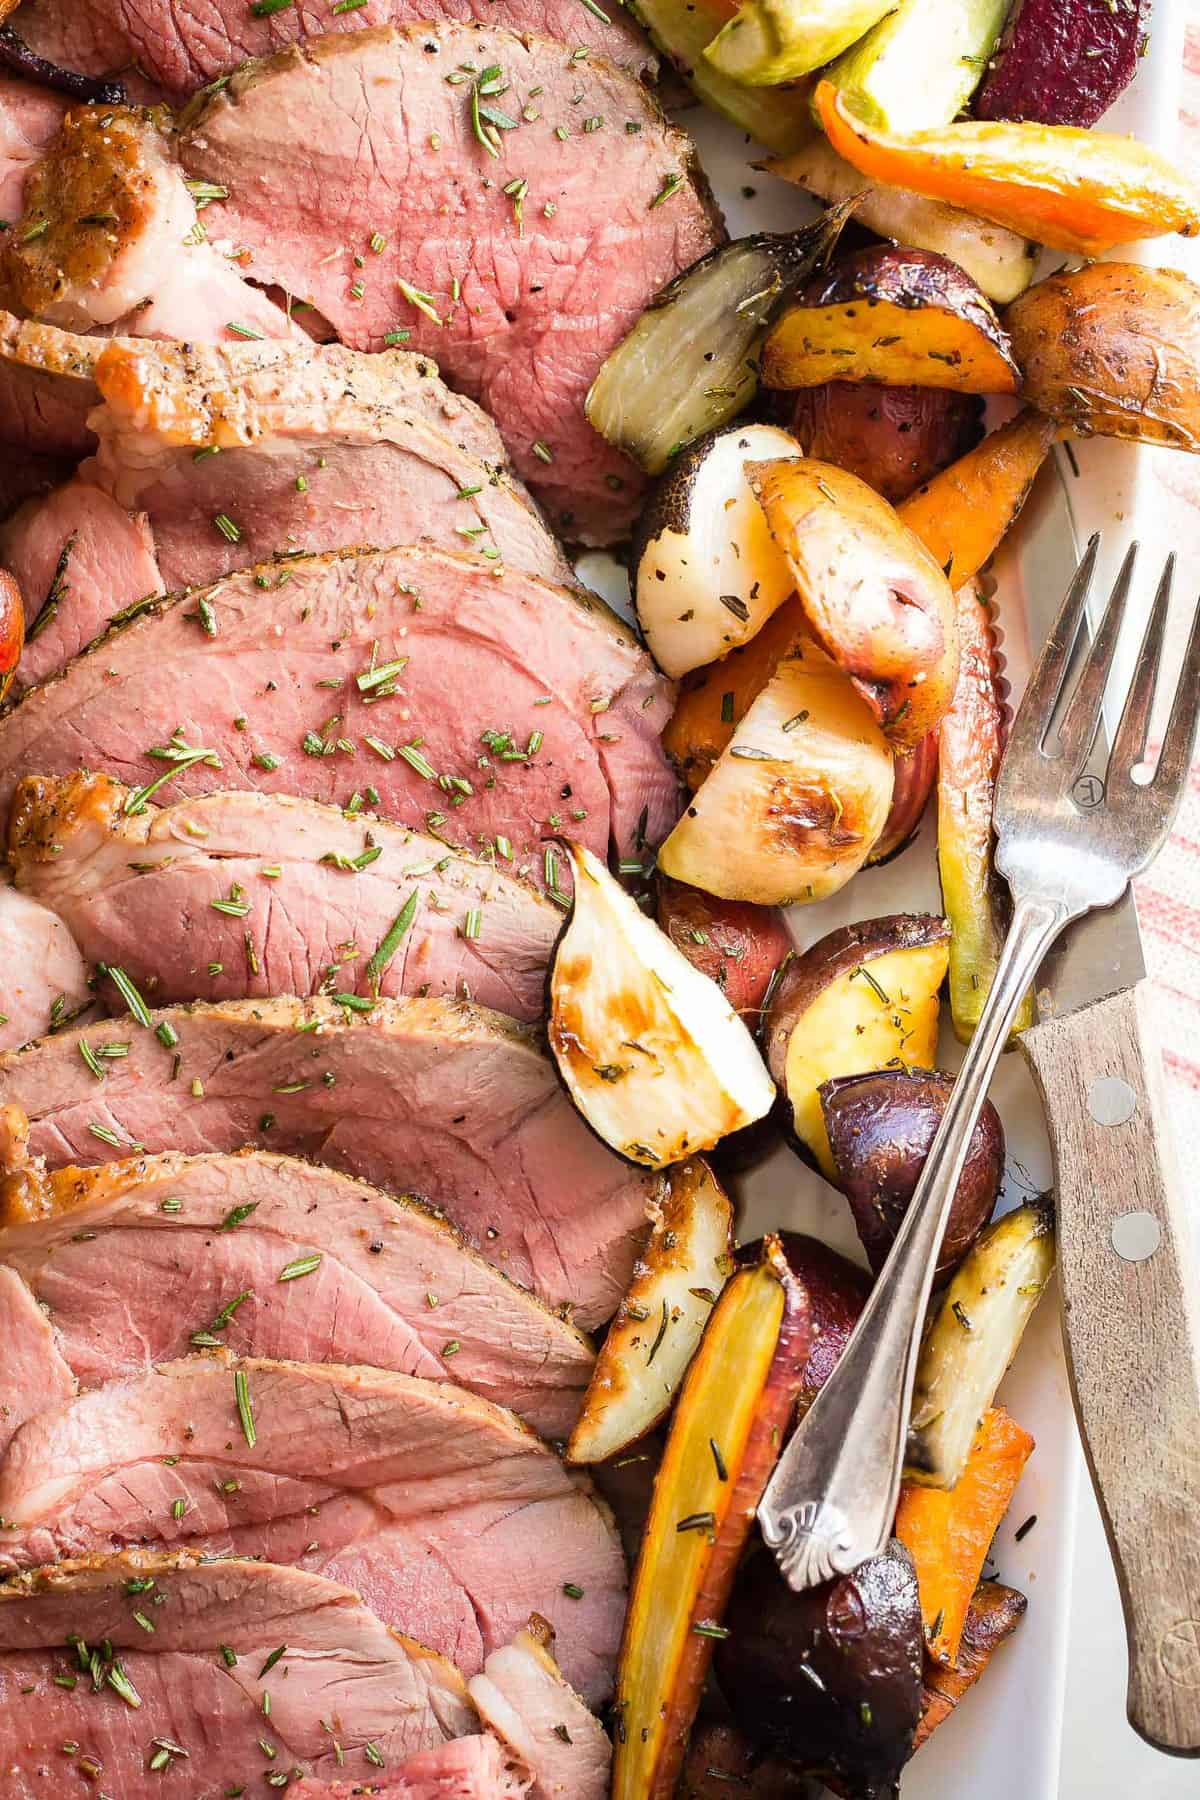 Juicy roast leg of lamb served with roasted root vegetables